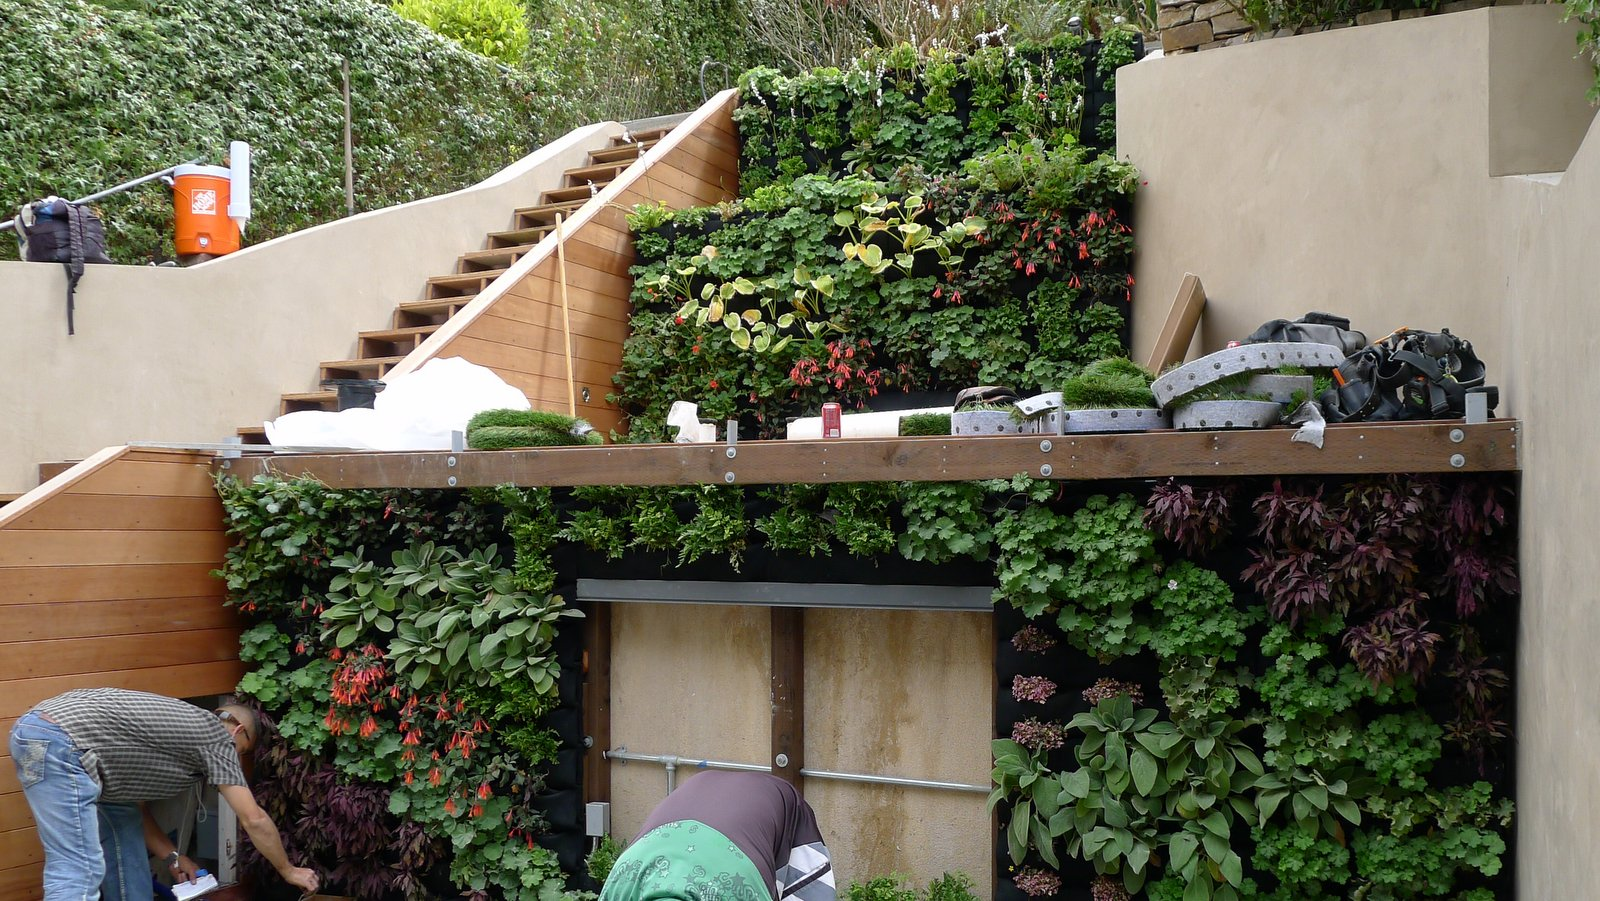 Terraced vertical garden for pacific heights home for Home vertical garden